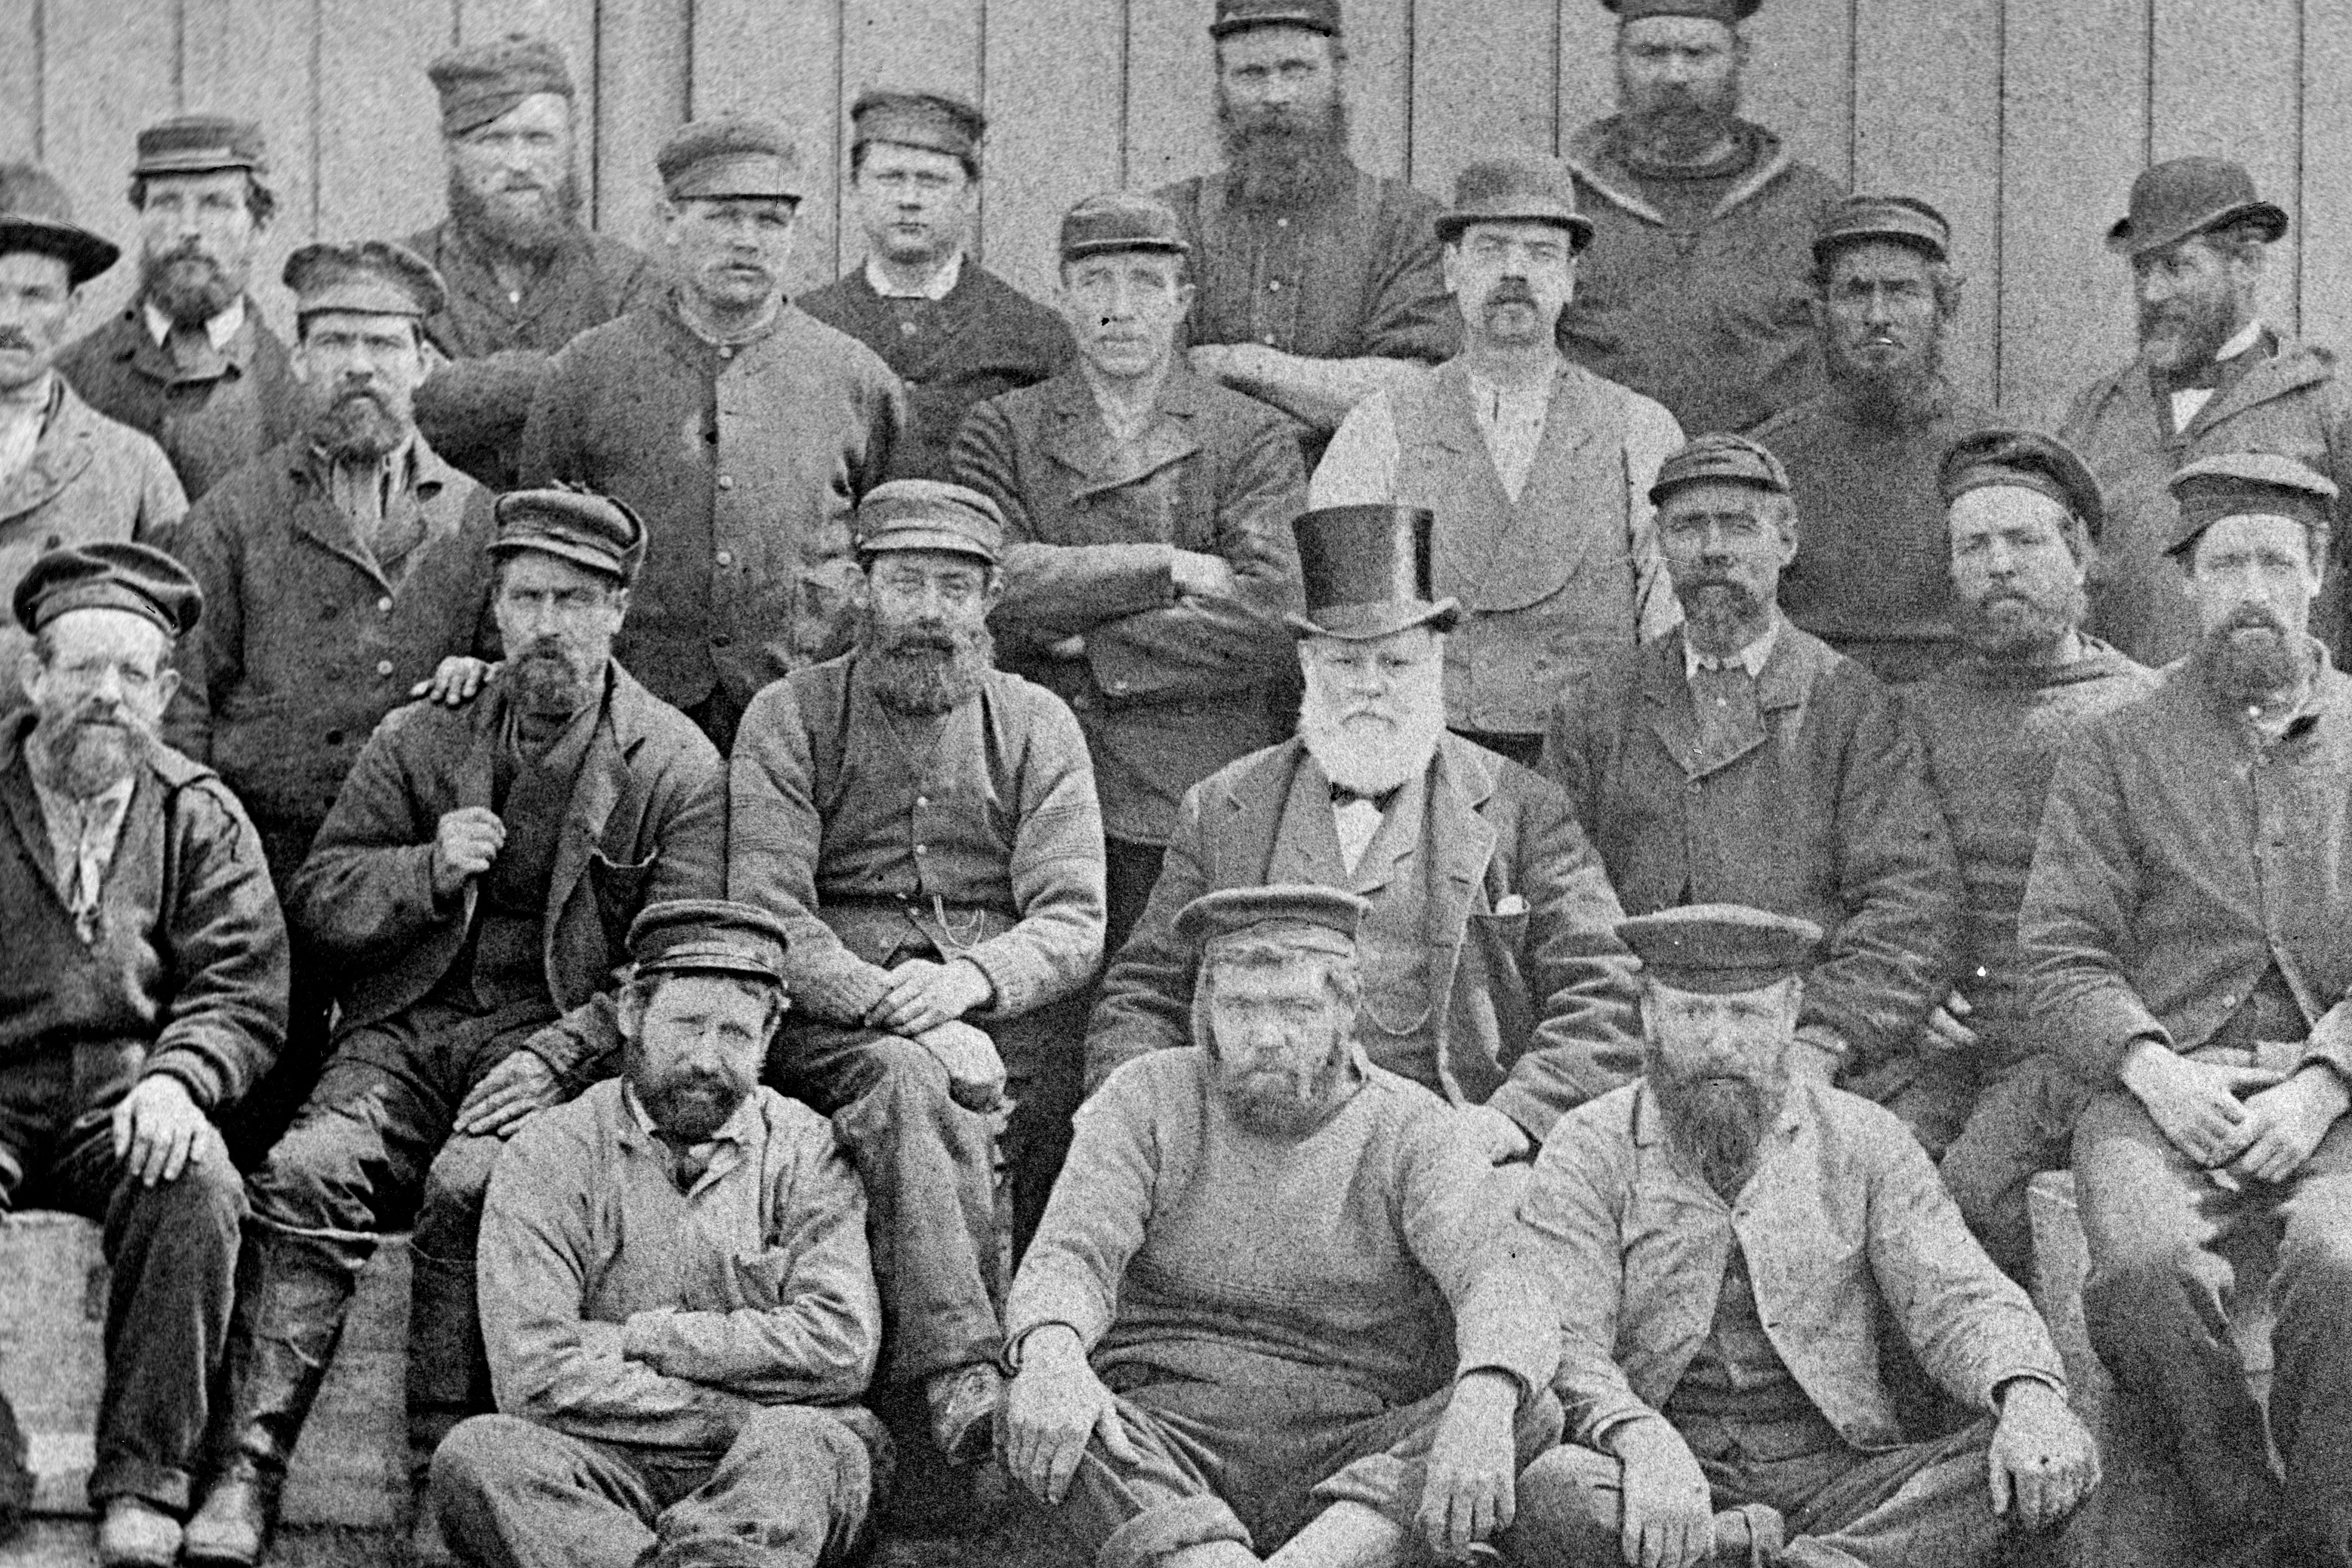 Crew of the whaler 'Hope'